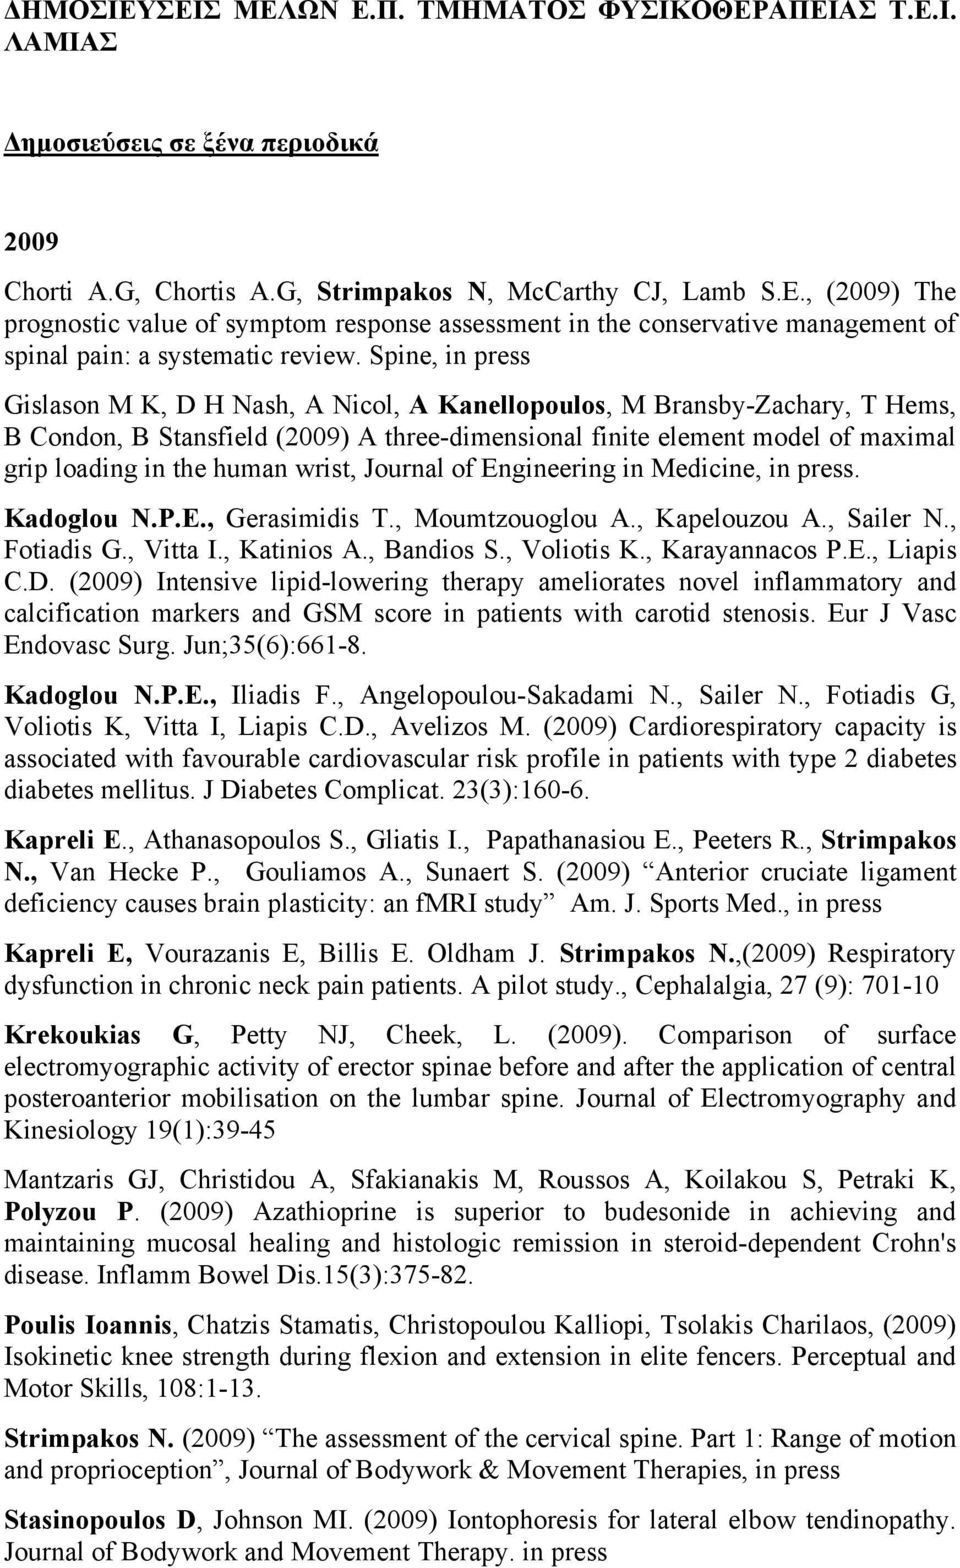 Spine, in press Gislason M K, D H Nash, A Nicol, A Kanellopoulos, M Bransby-Zachary, T Hems, B Condon, B Stansfield (2009) A three-dimensional finite element model of maximal grip loading in the